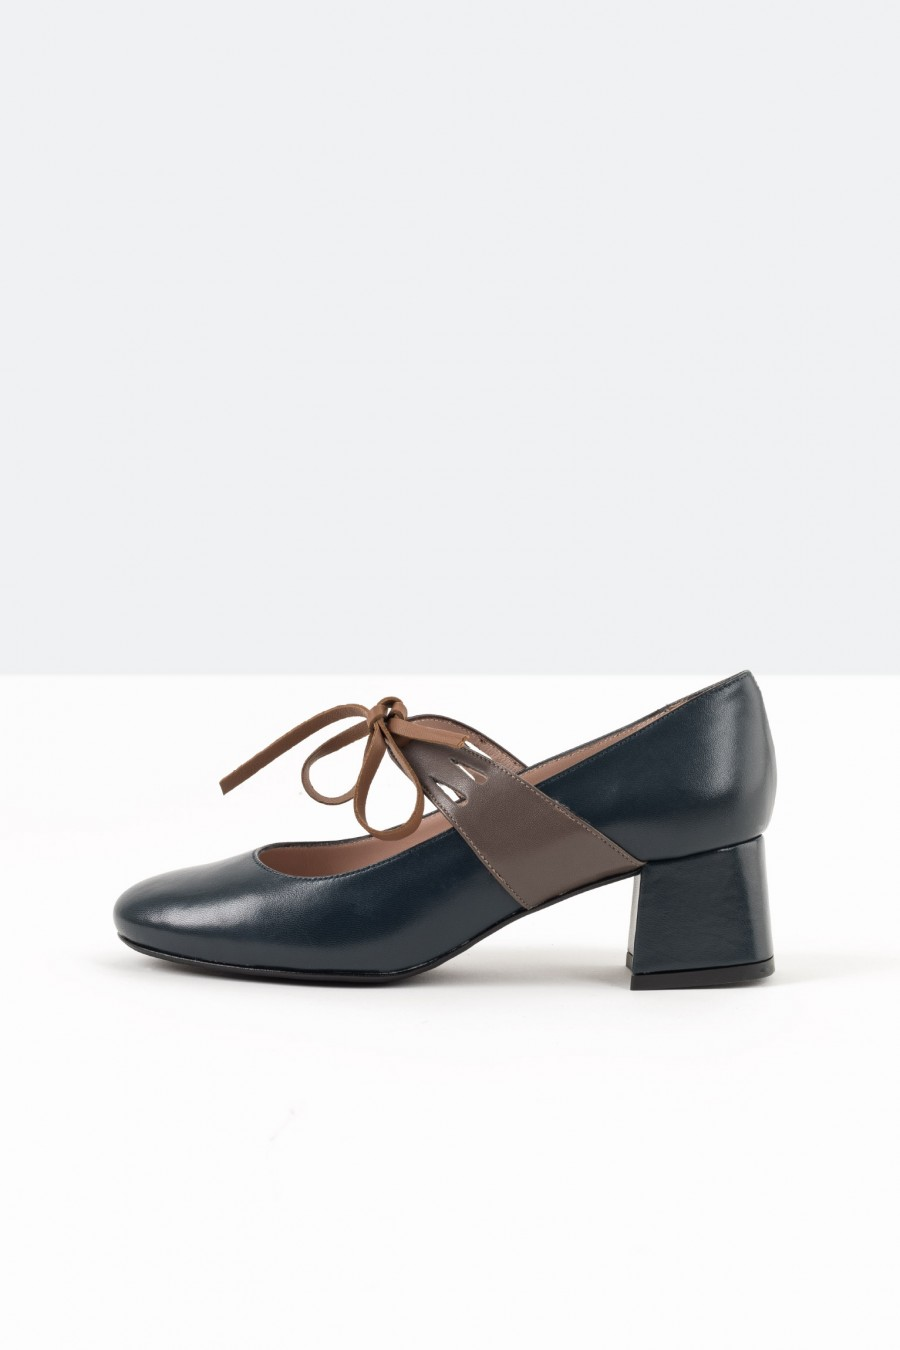 Blue bebè shoes with brown leather straps